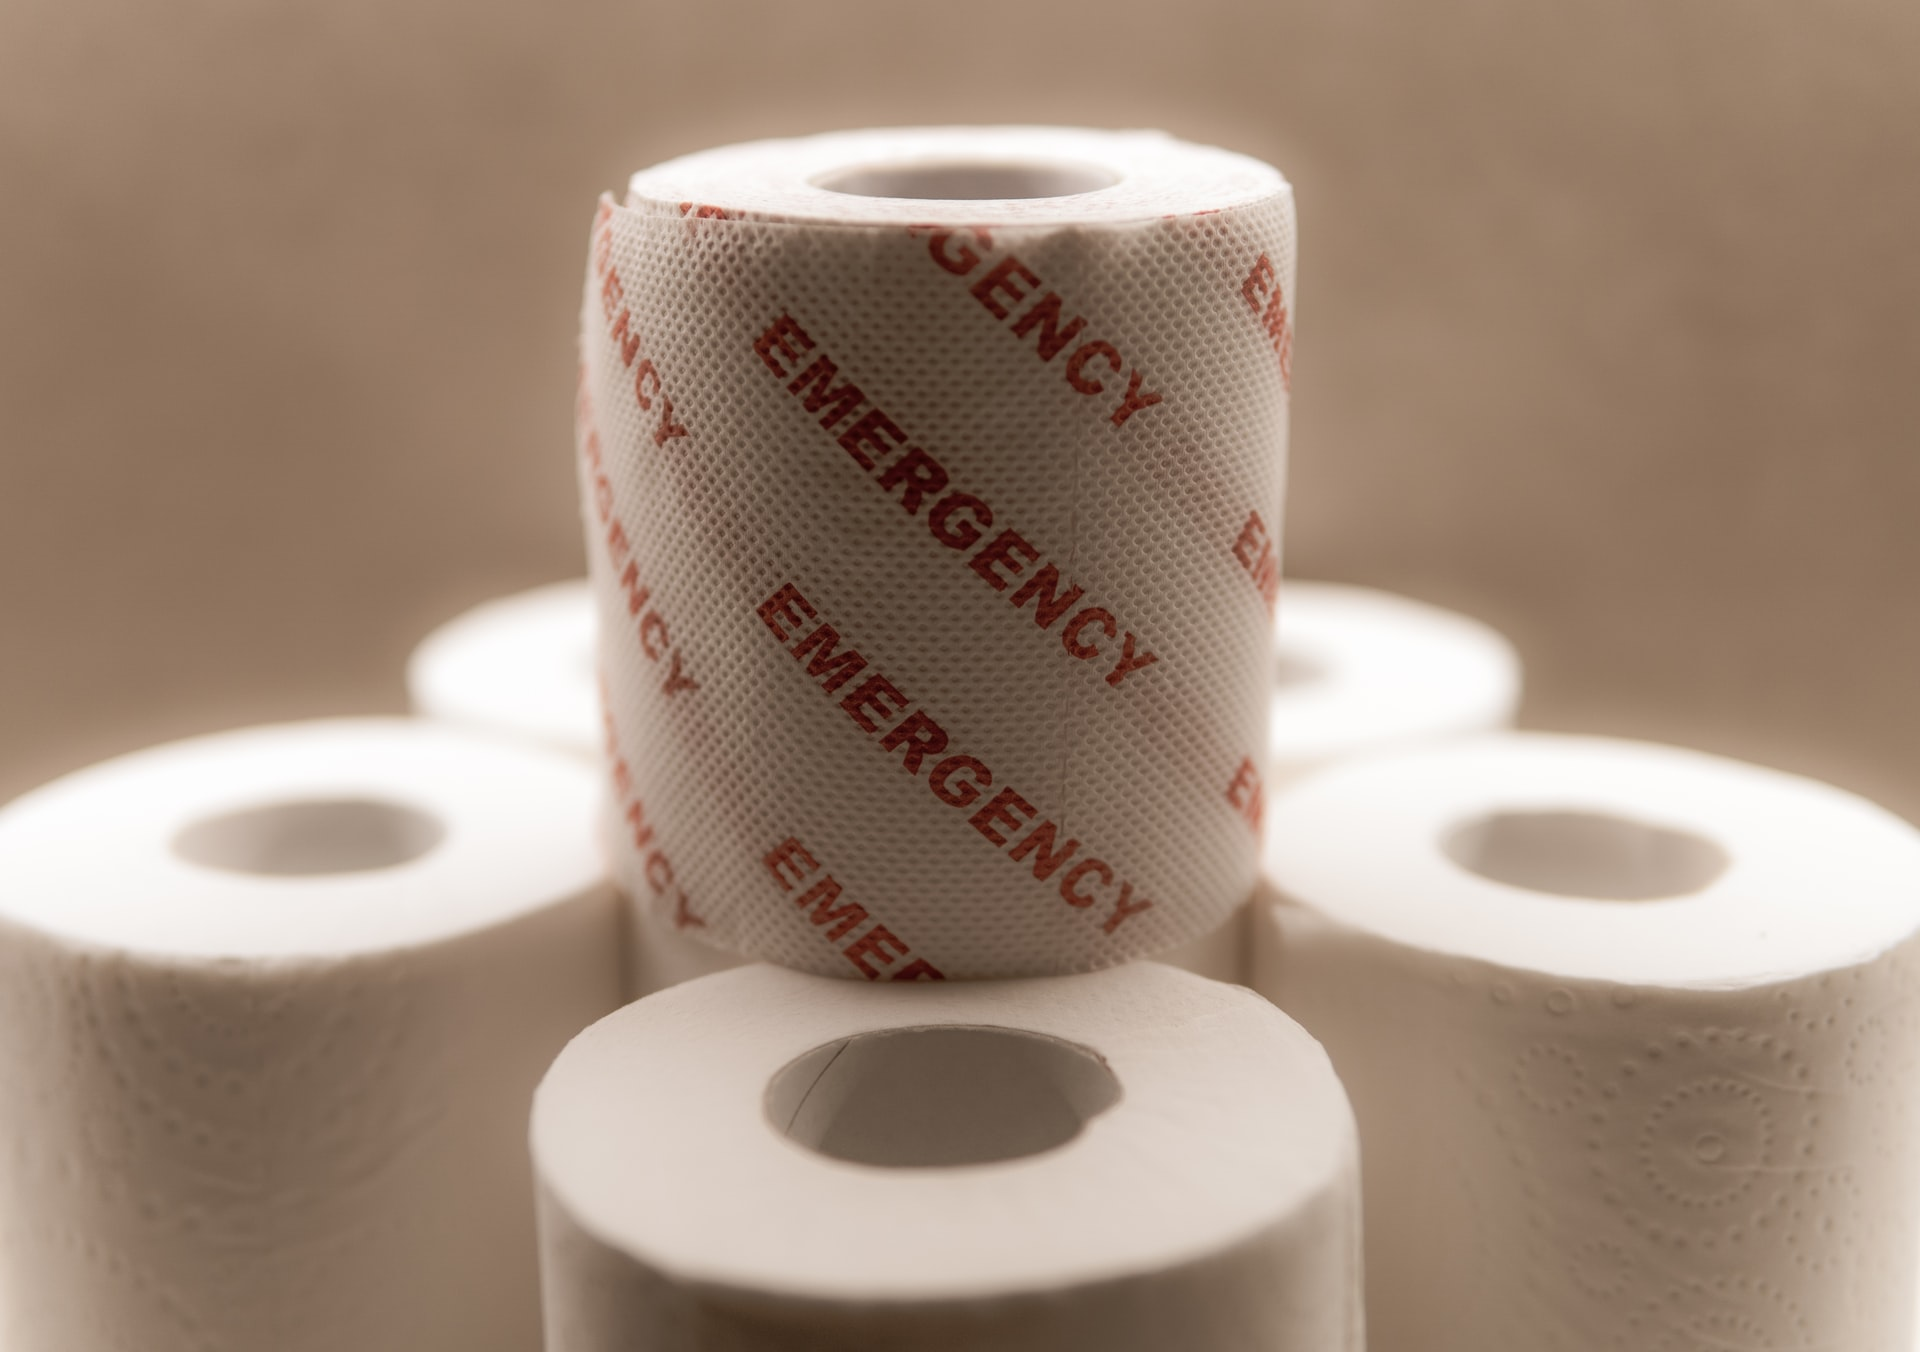 Here we see rolls of toilet paper with one stacked up reading 'emergency'